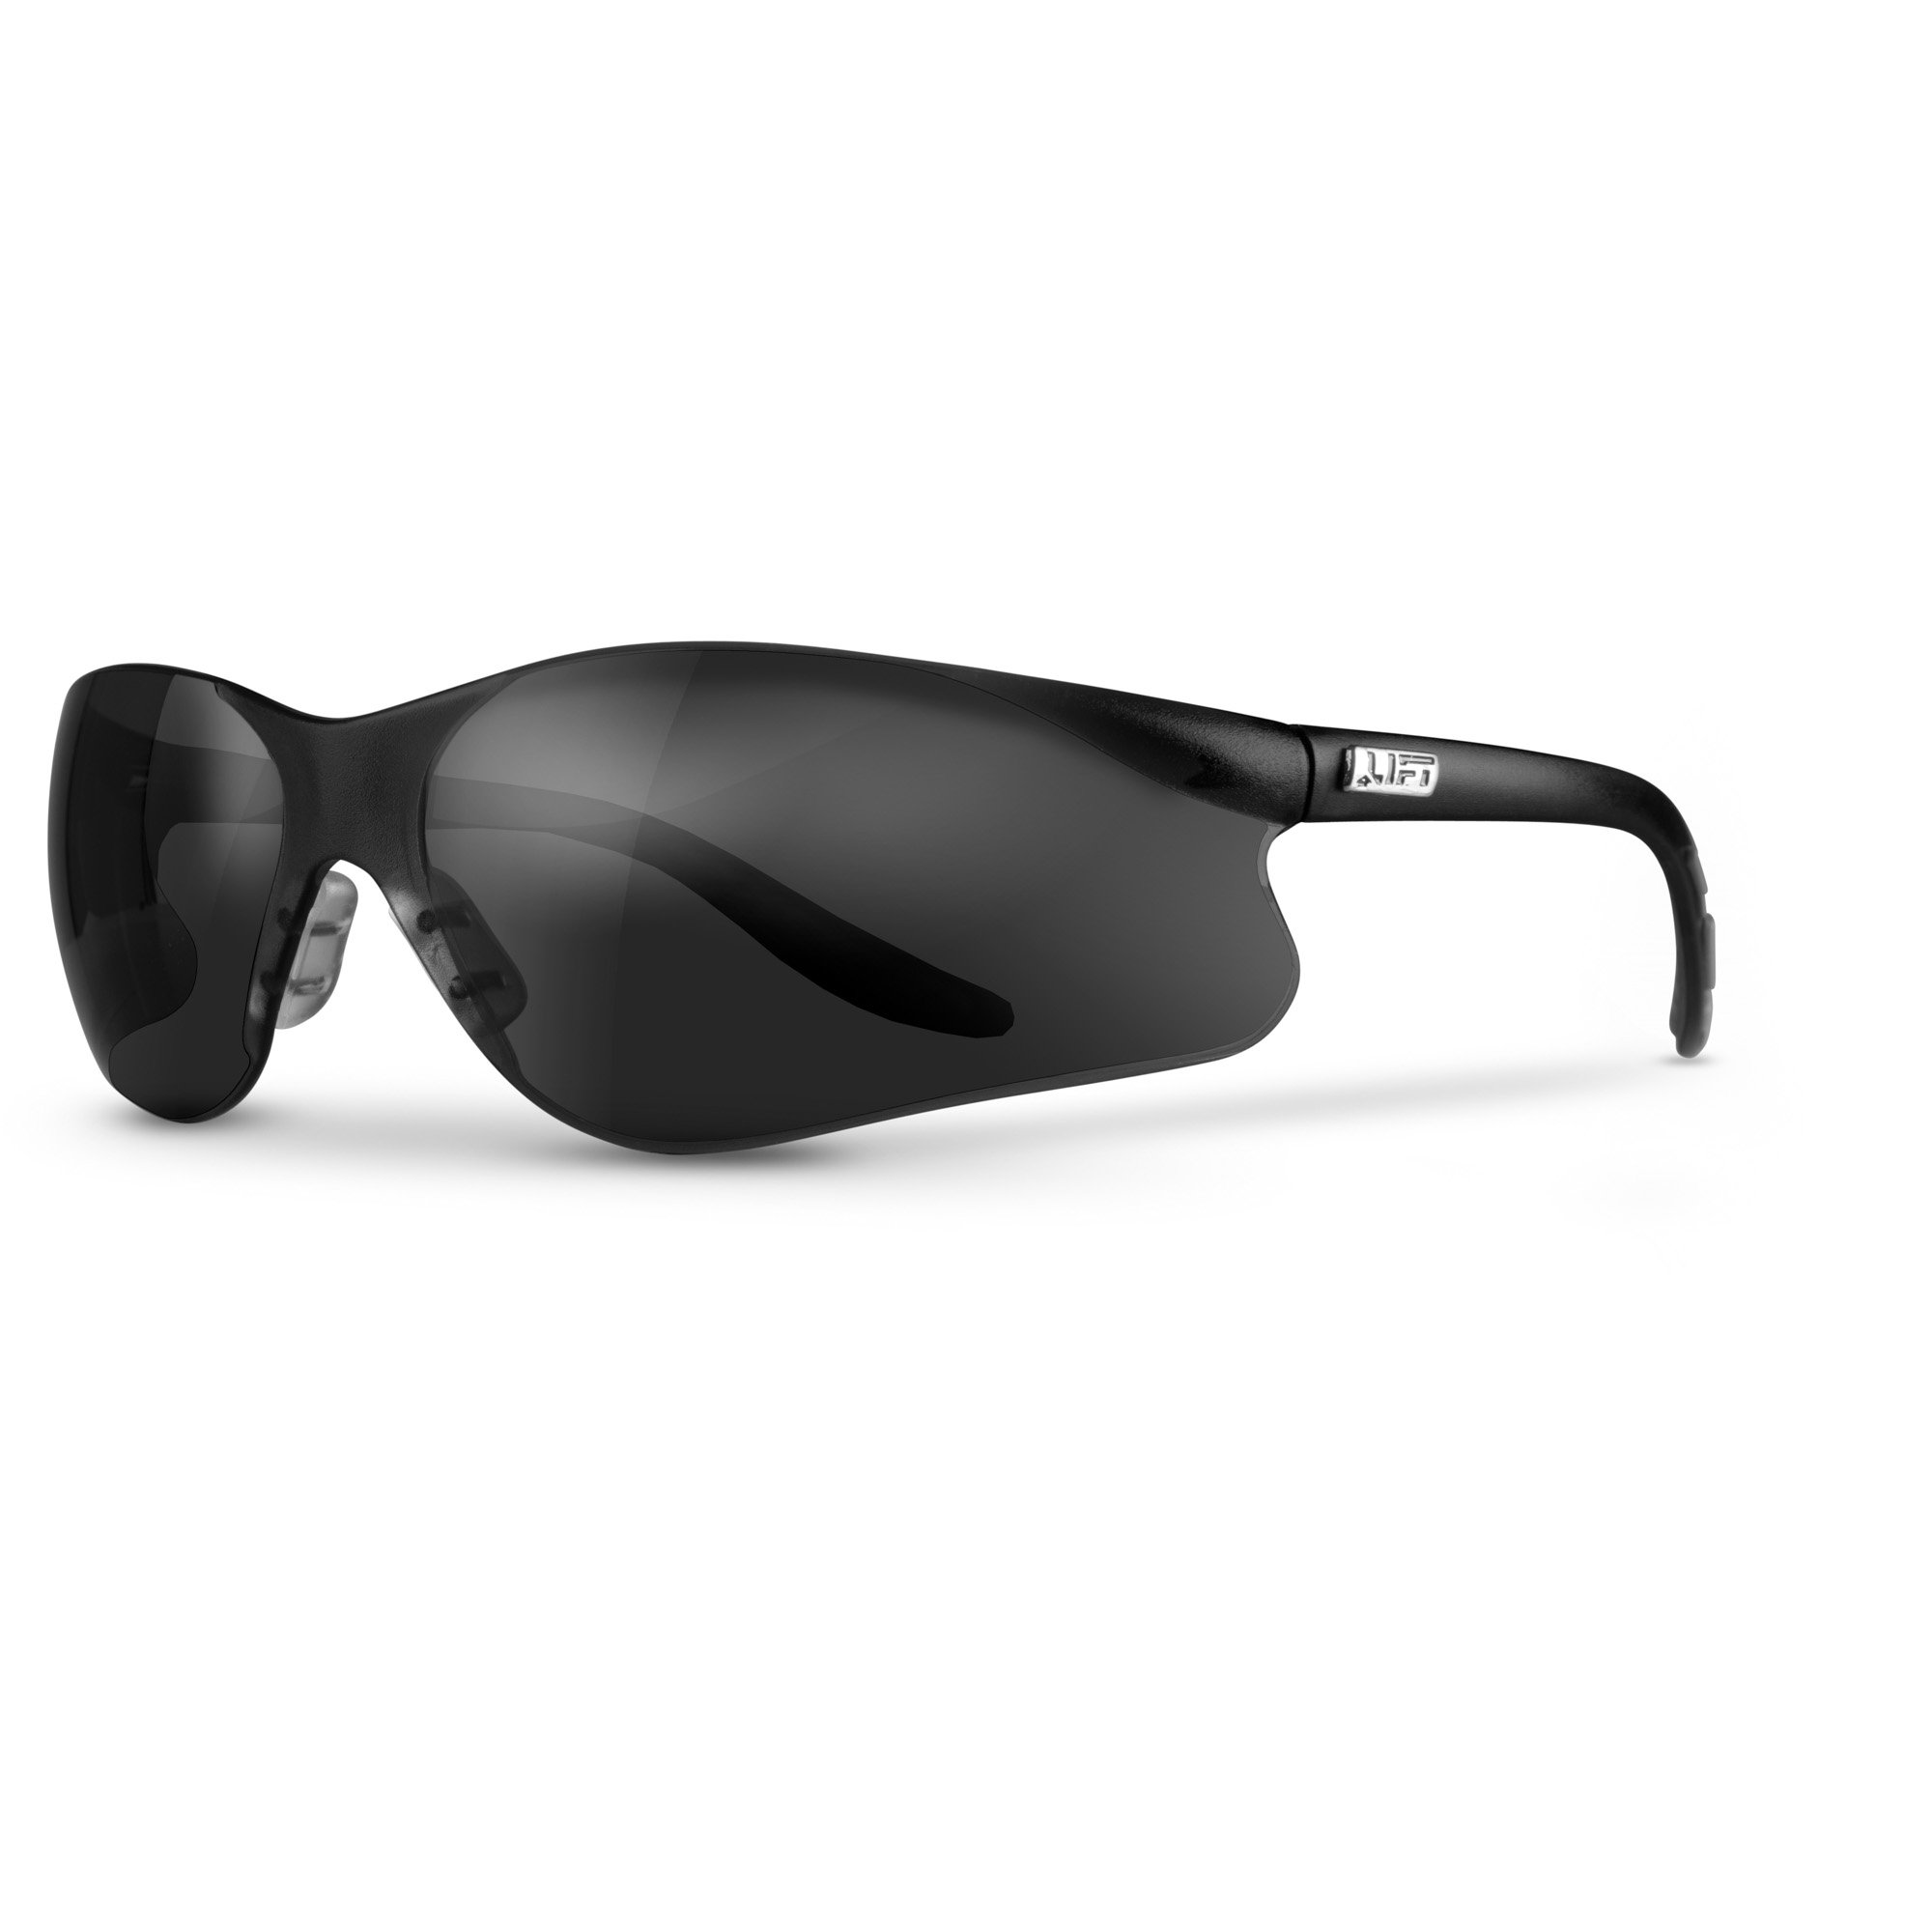 LIFT Safety Sectorlite Safety Glasses (Black Frame/Mirror Lens)